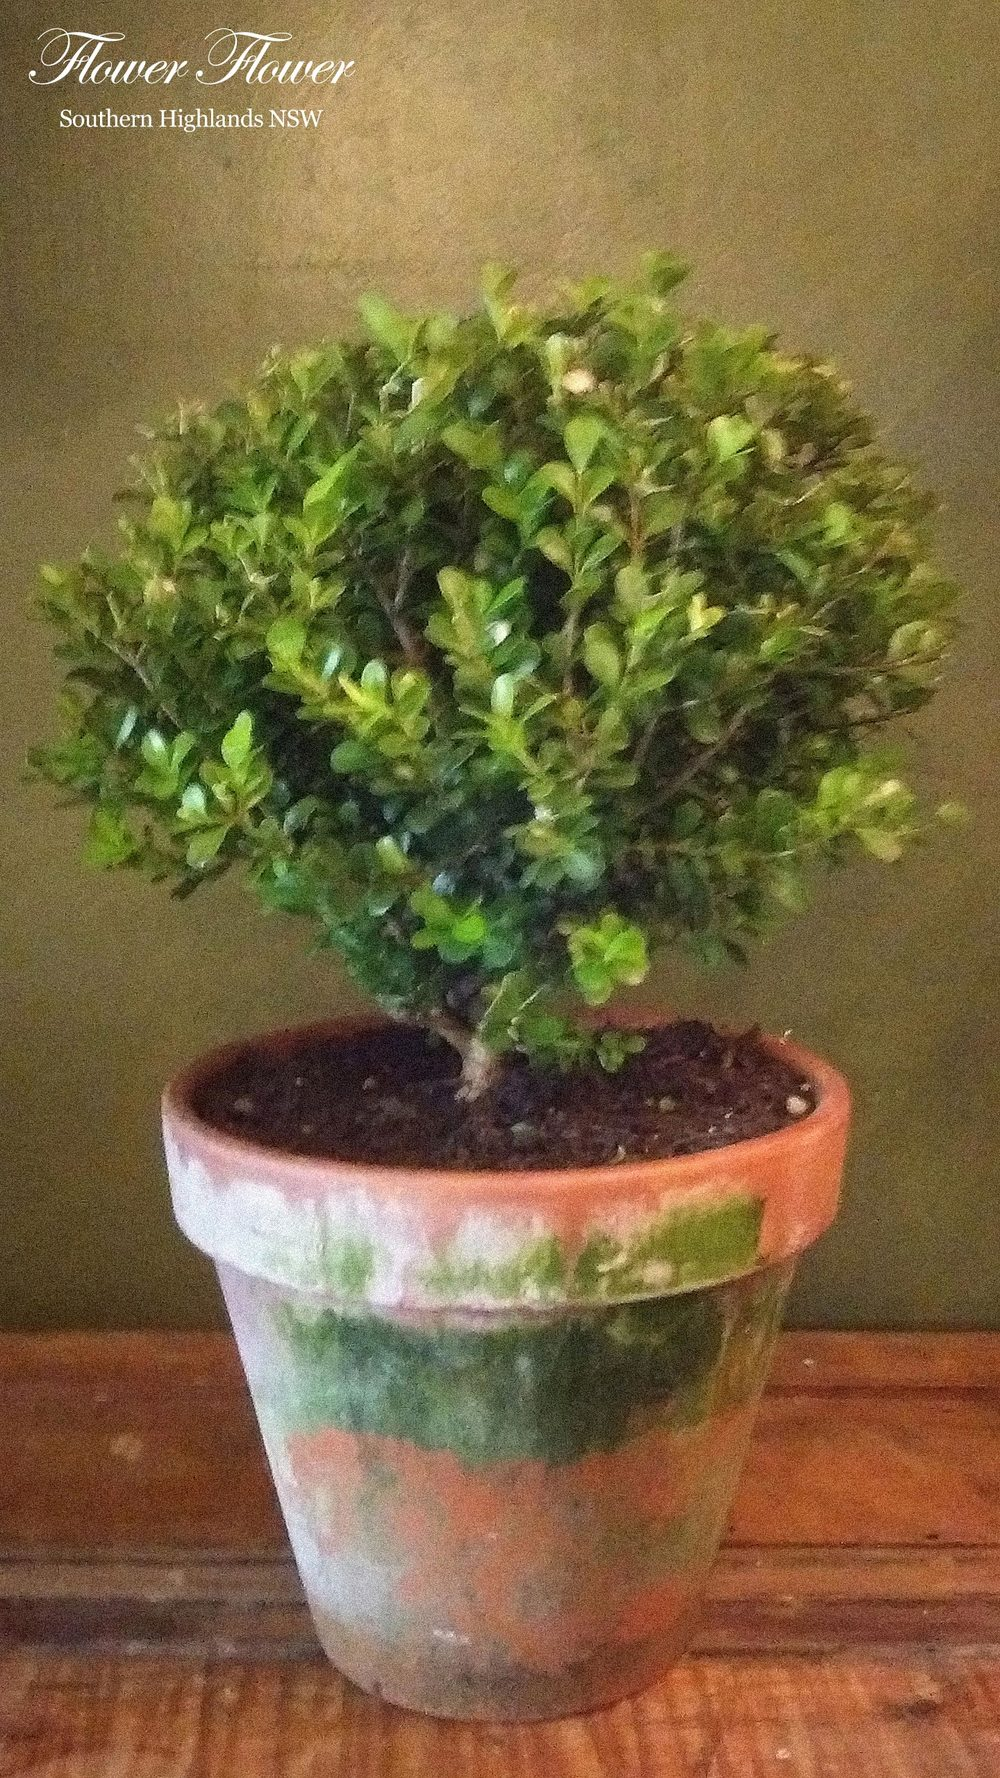 A_Jasmine_Buxus_Appro27cm_From110.jpg